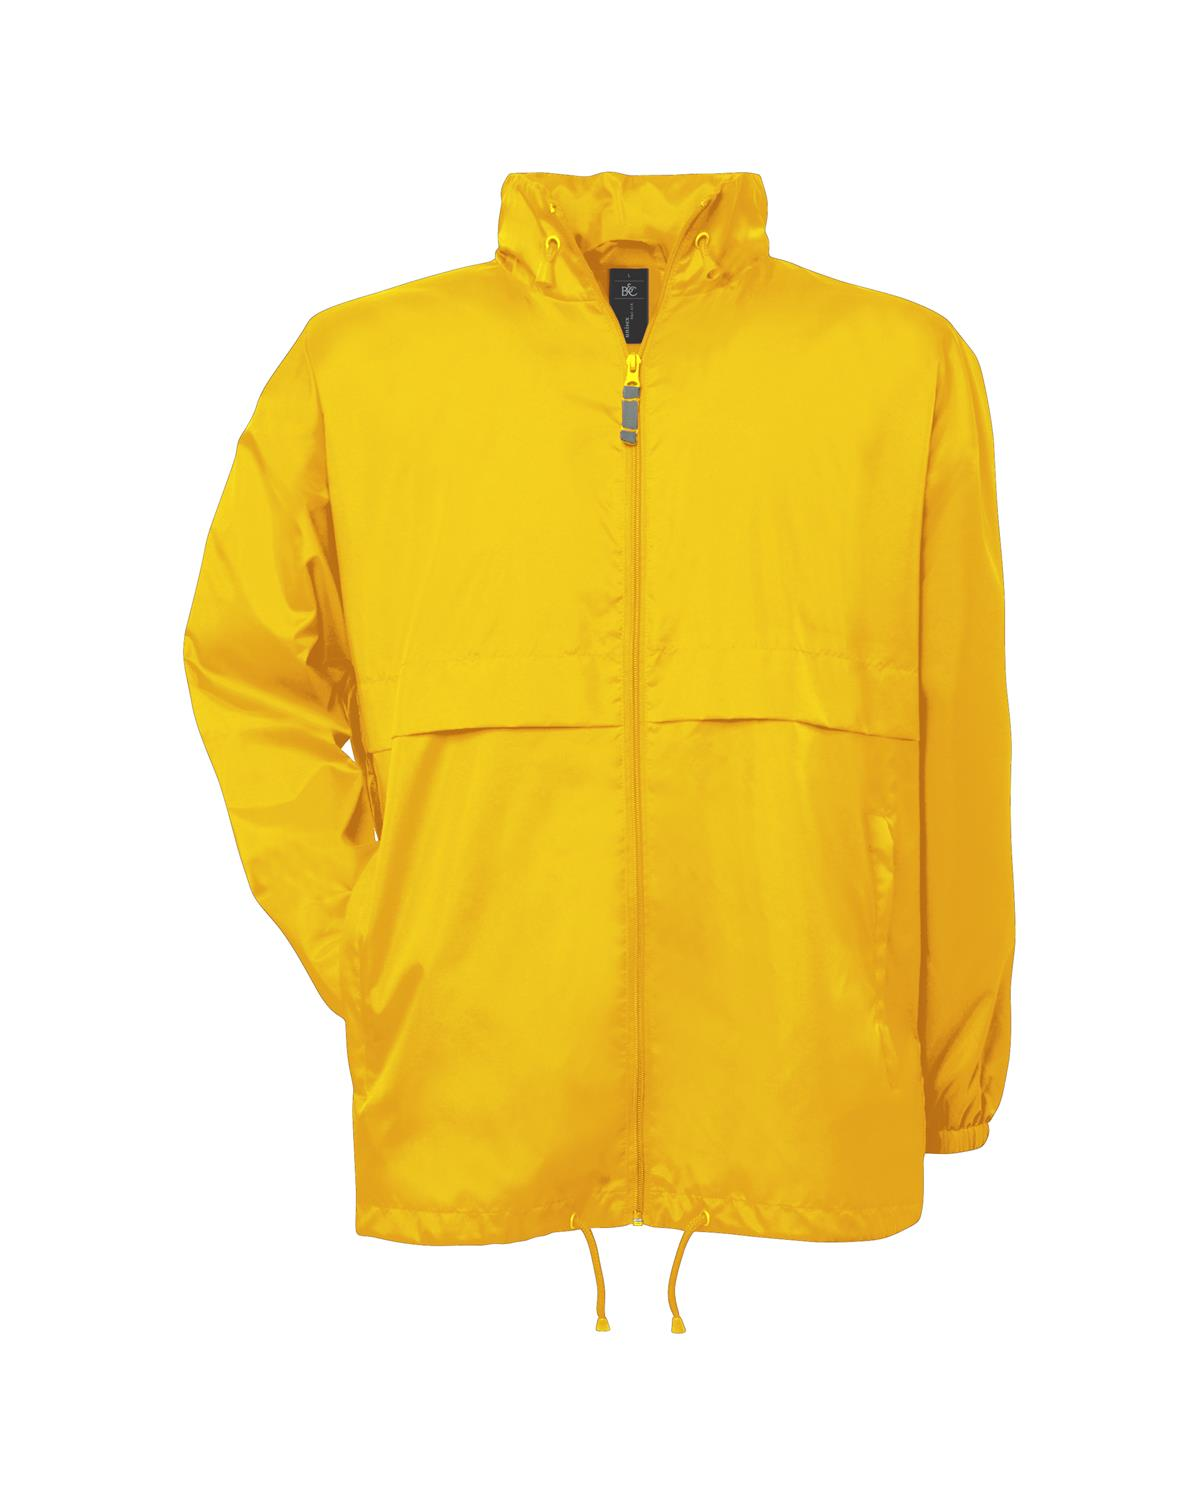 Trespass Waterproof Jackets for Men. Come rain or shine, men need a good waterproof jacket at most times of the year in the UK and further afield.